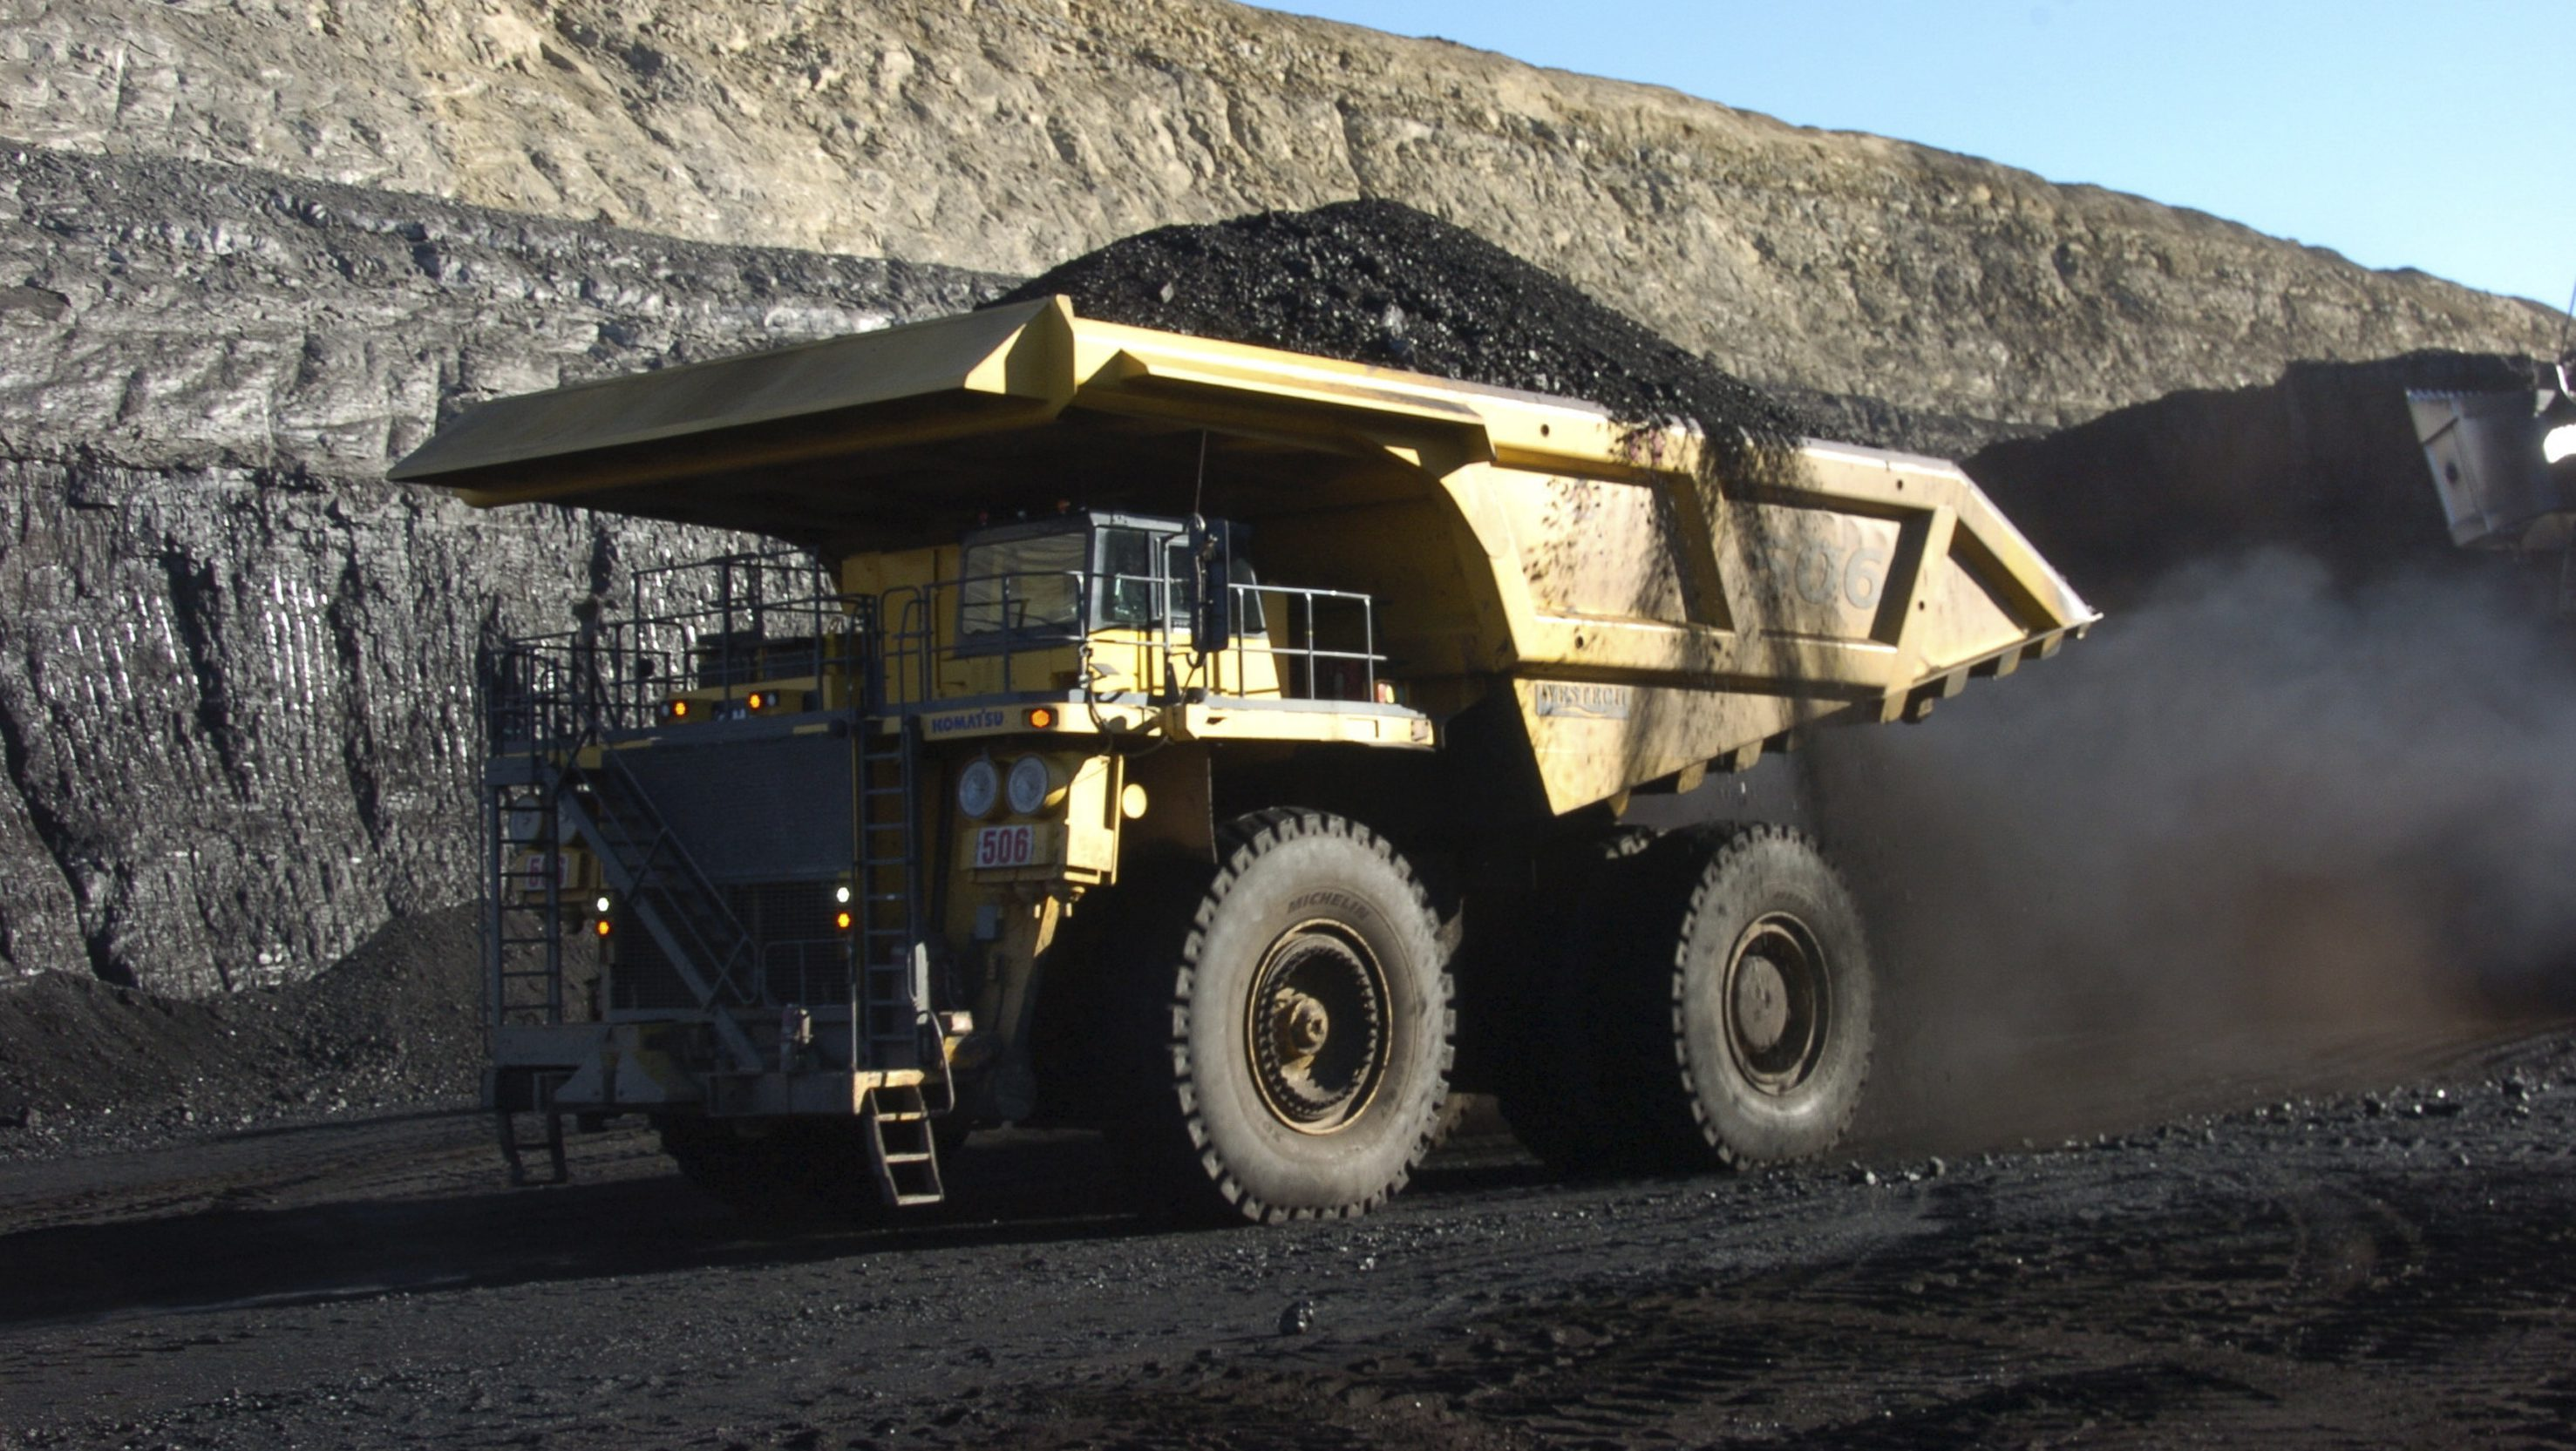 FILE - In this Nov. 15, 2016 file photo, a haul truck with a 250-ton capacity carries coal from the Spring Creek strip mine near Decker, Mont. President Trump's latest move to support coal mining is unlikely to turn around the industry's prospects immediately. Experts say the biggest problem faced by the mining industry today isn't a coal shortage of coal or even the prospect of climate change regulations, but an abundance of cheap natural gas. (AP Photo/Matthew Brown, File)